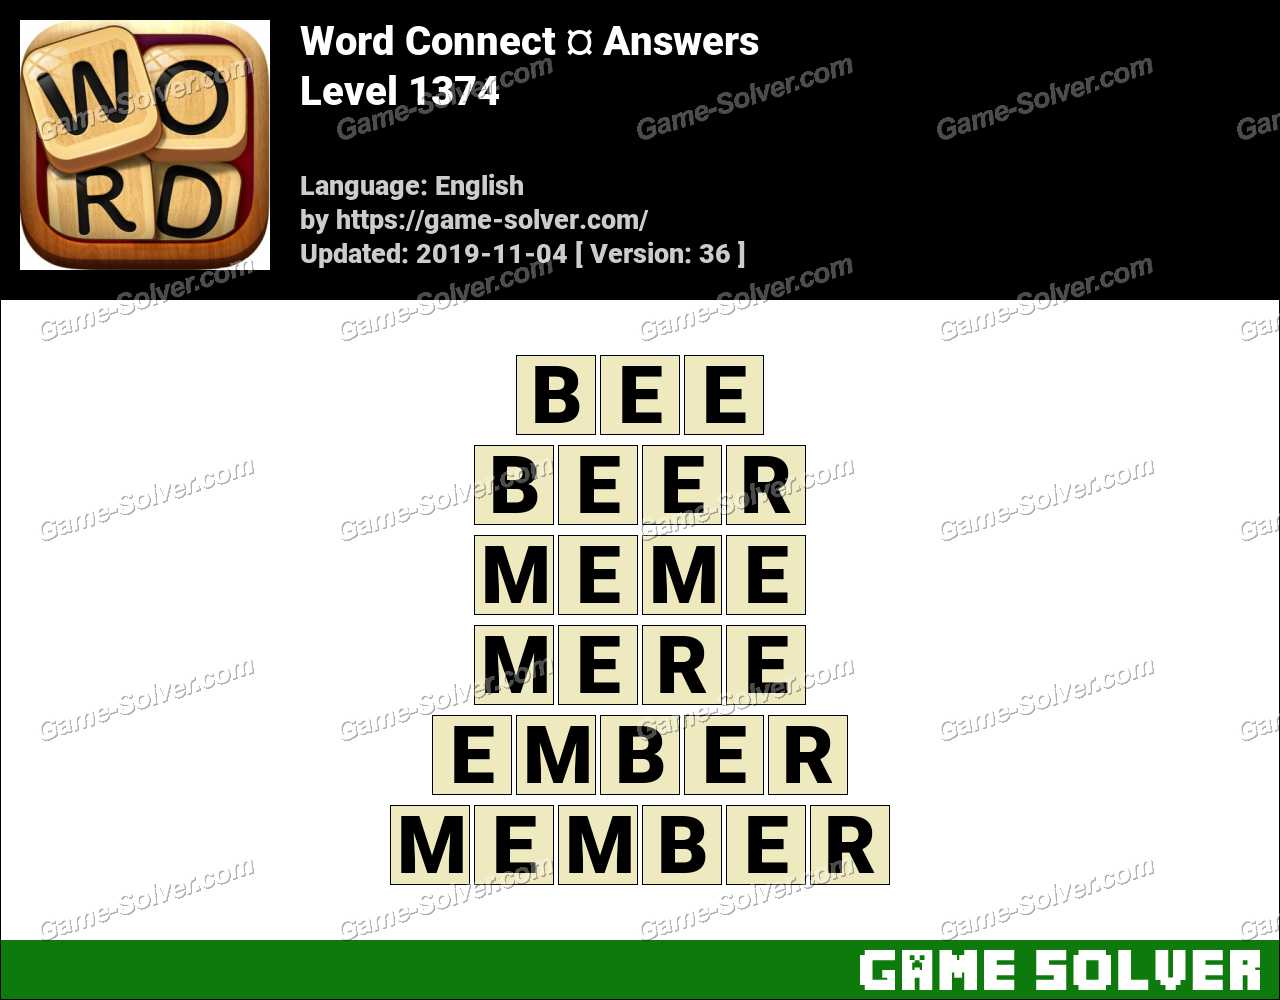 Word Connect Level 1374 Answers